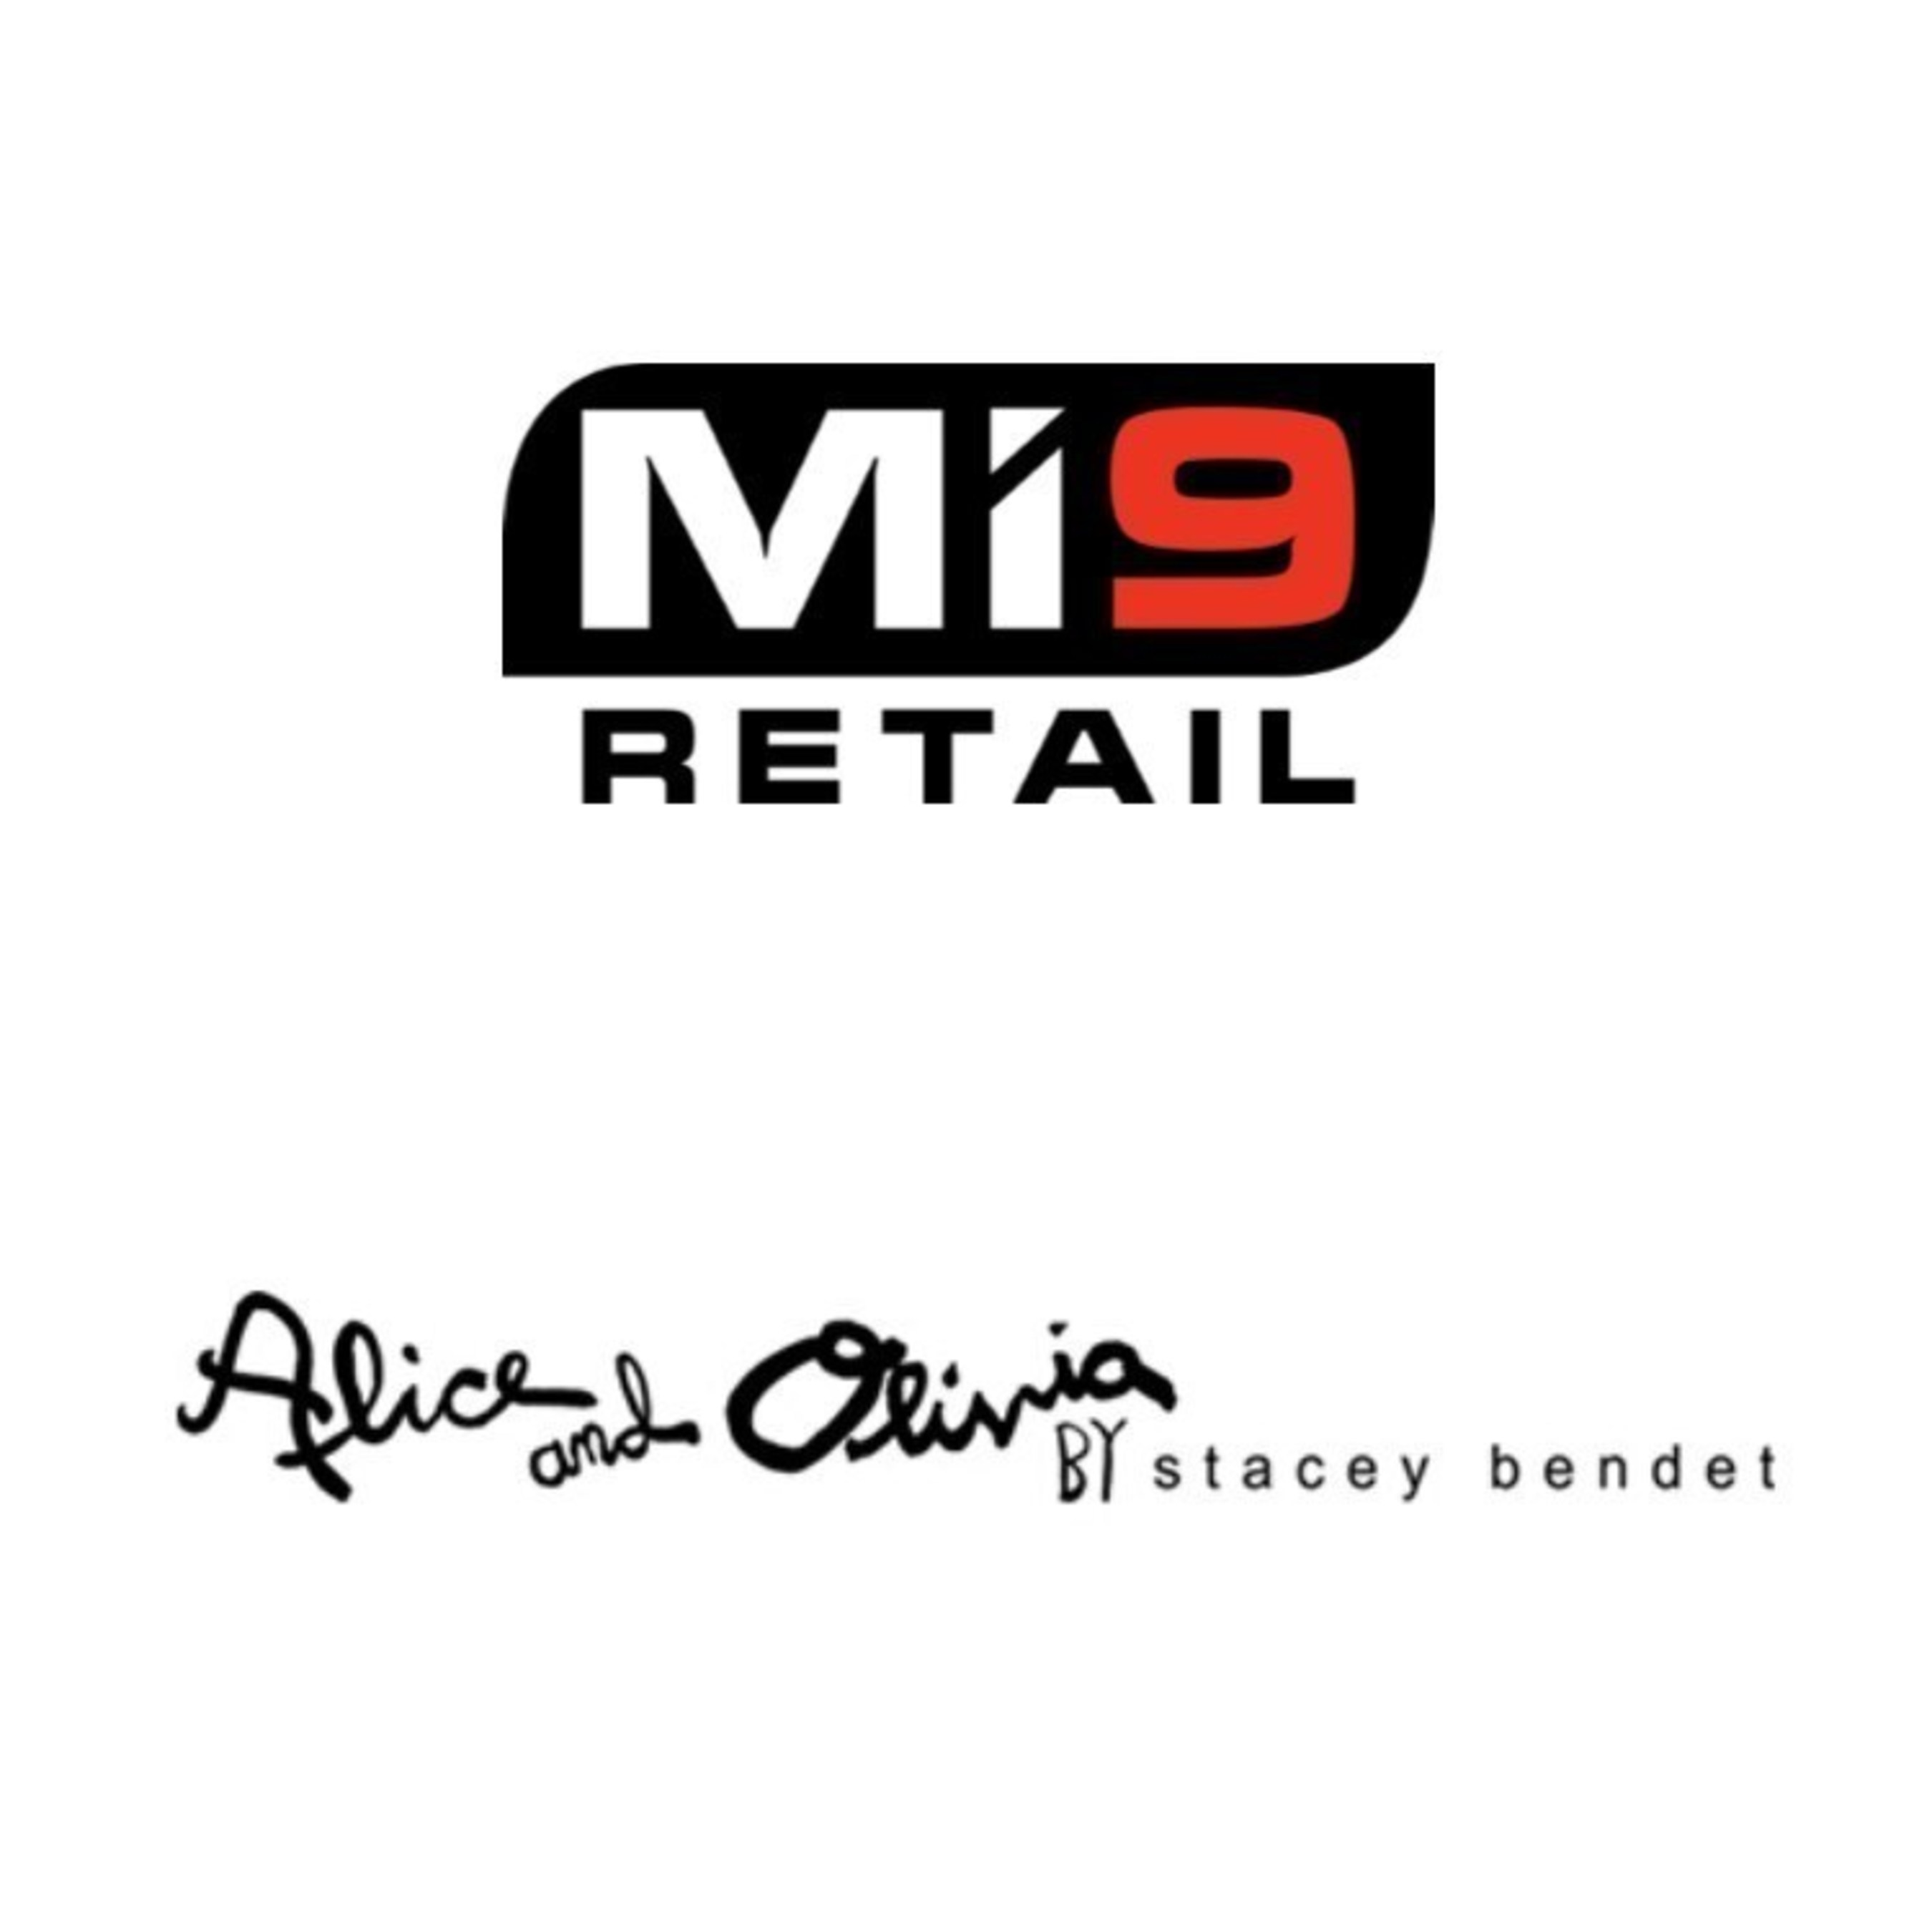 alice + olivia by Stacey Bendet Selects Mi9 Retail End-to-End Cloud Suite